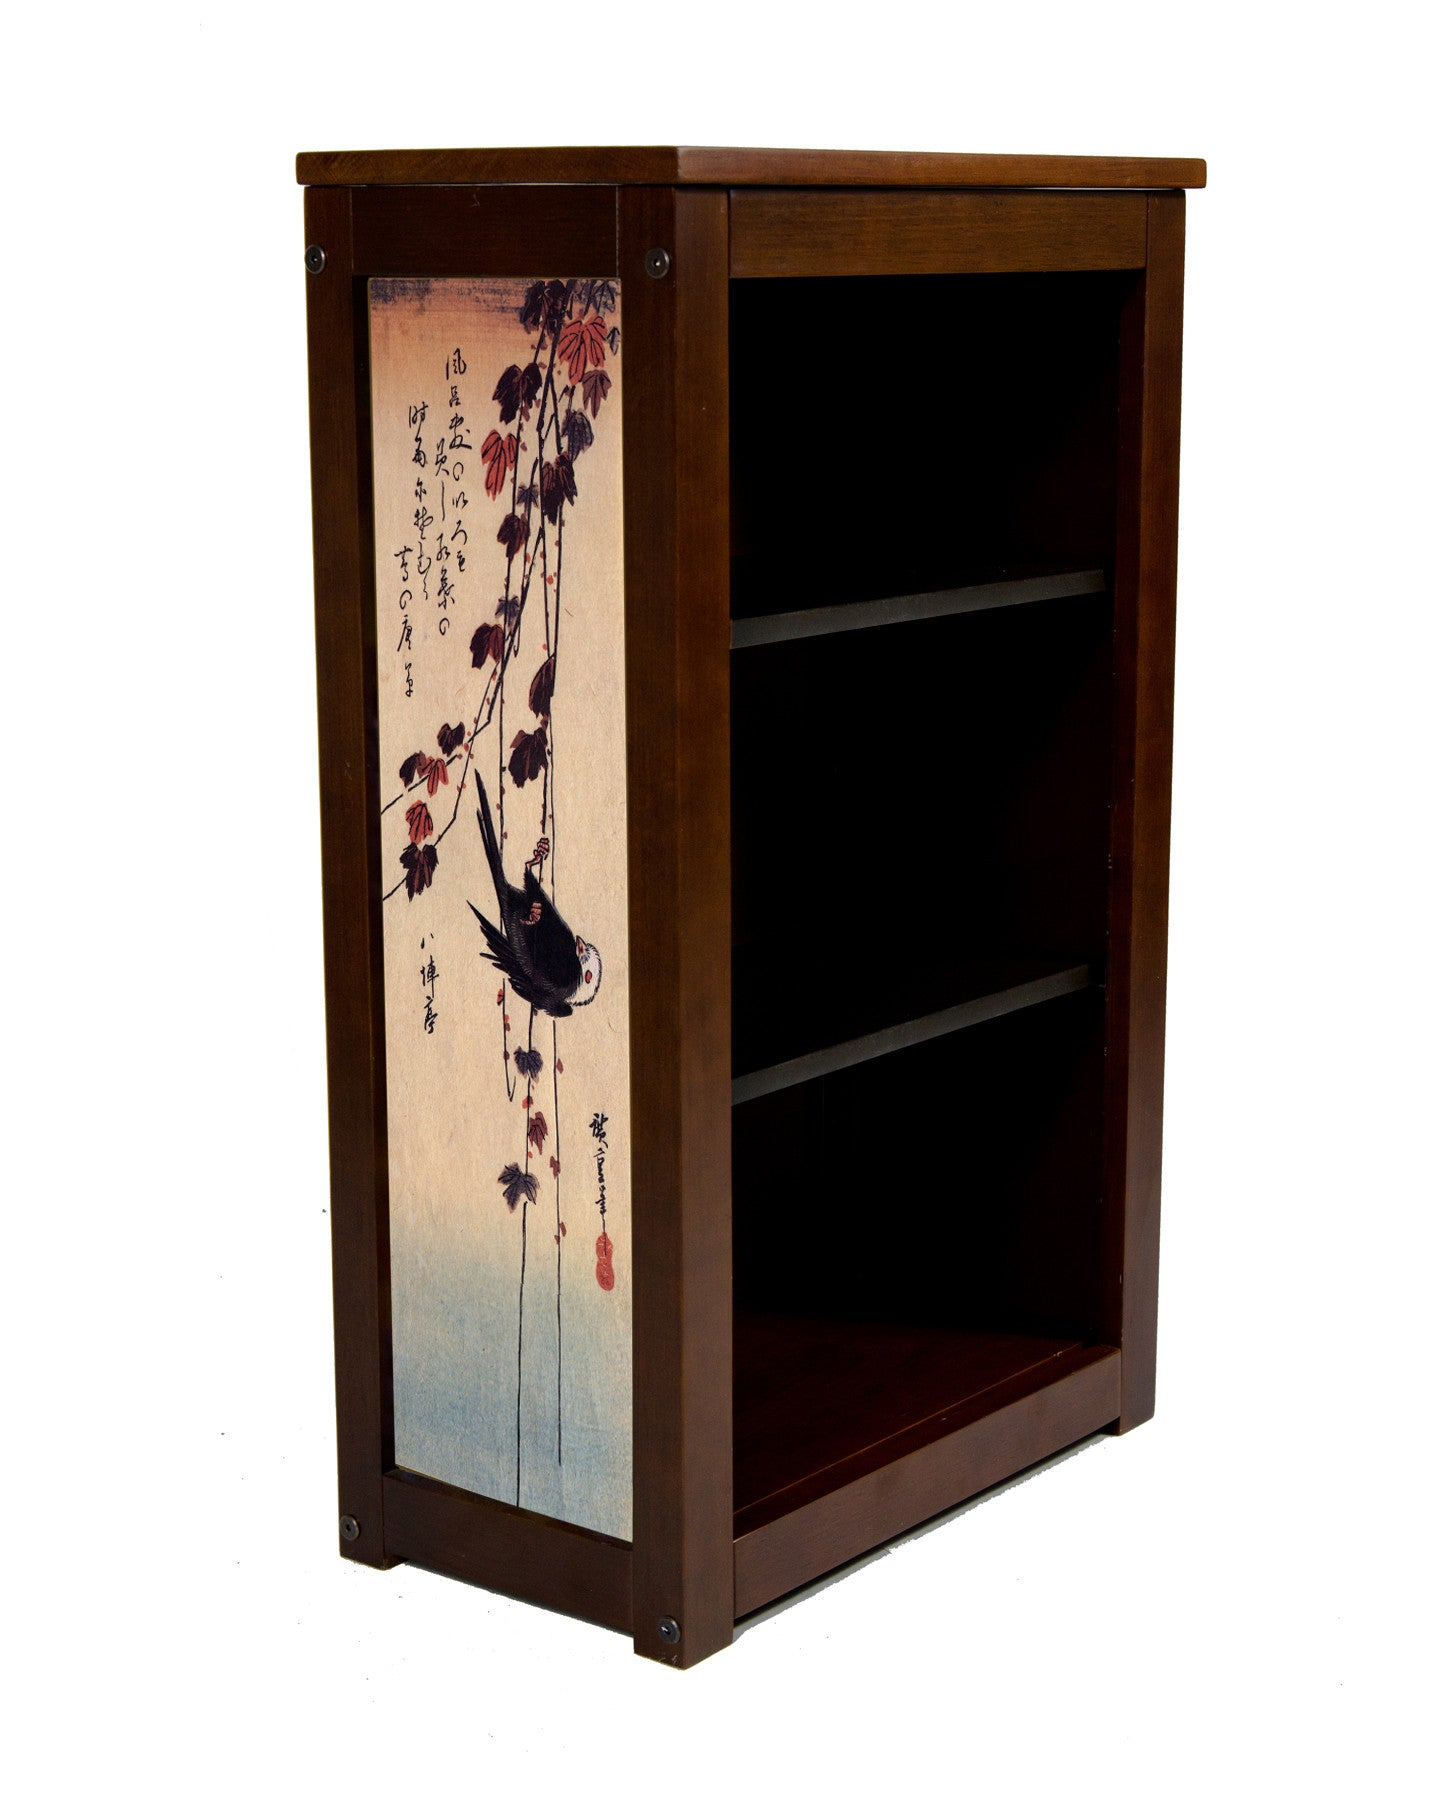 Book Cabinet with Black Bird hanging on ivy by Hiroshige